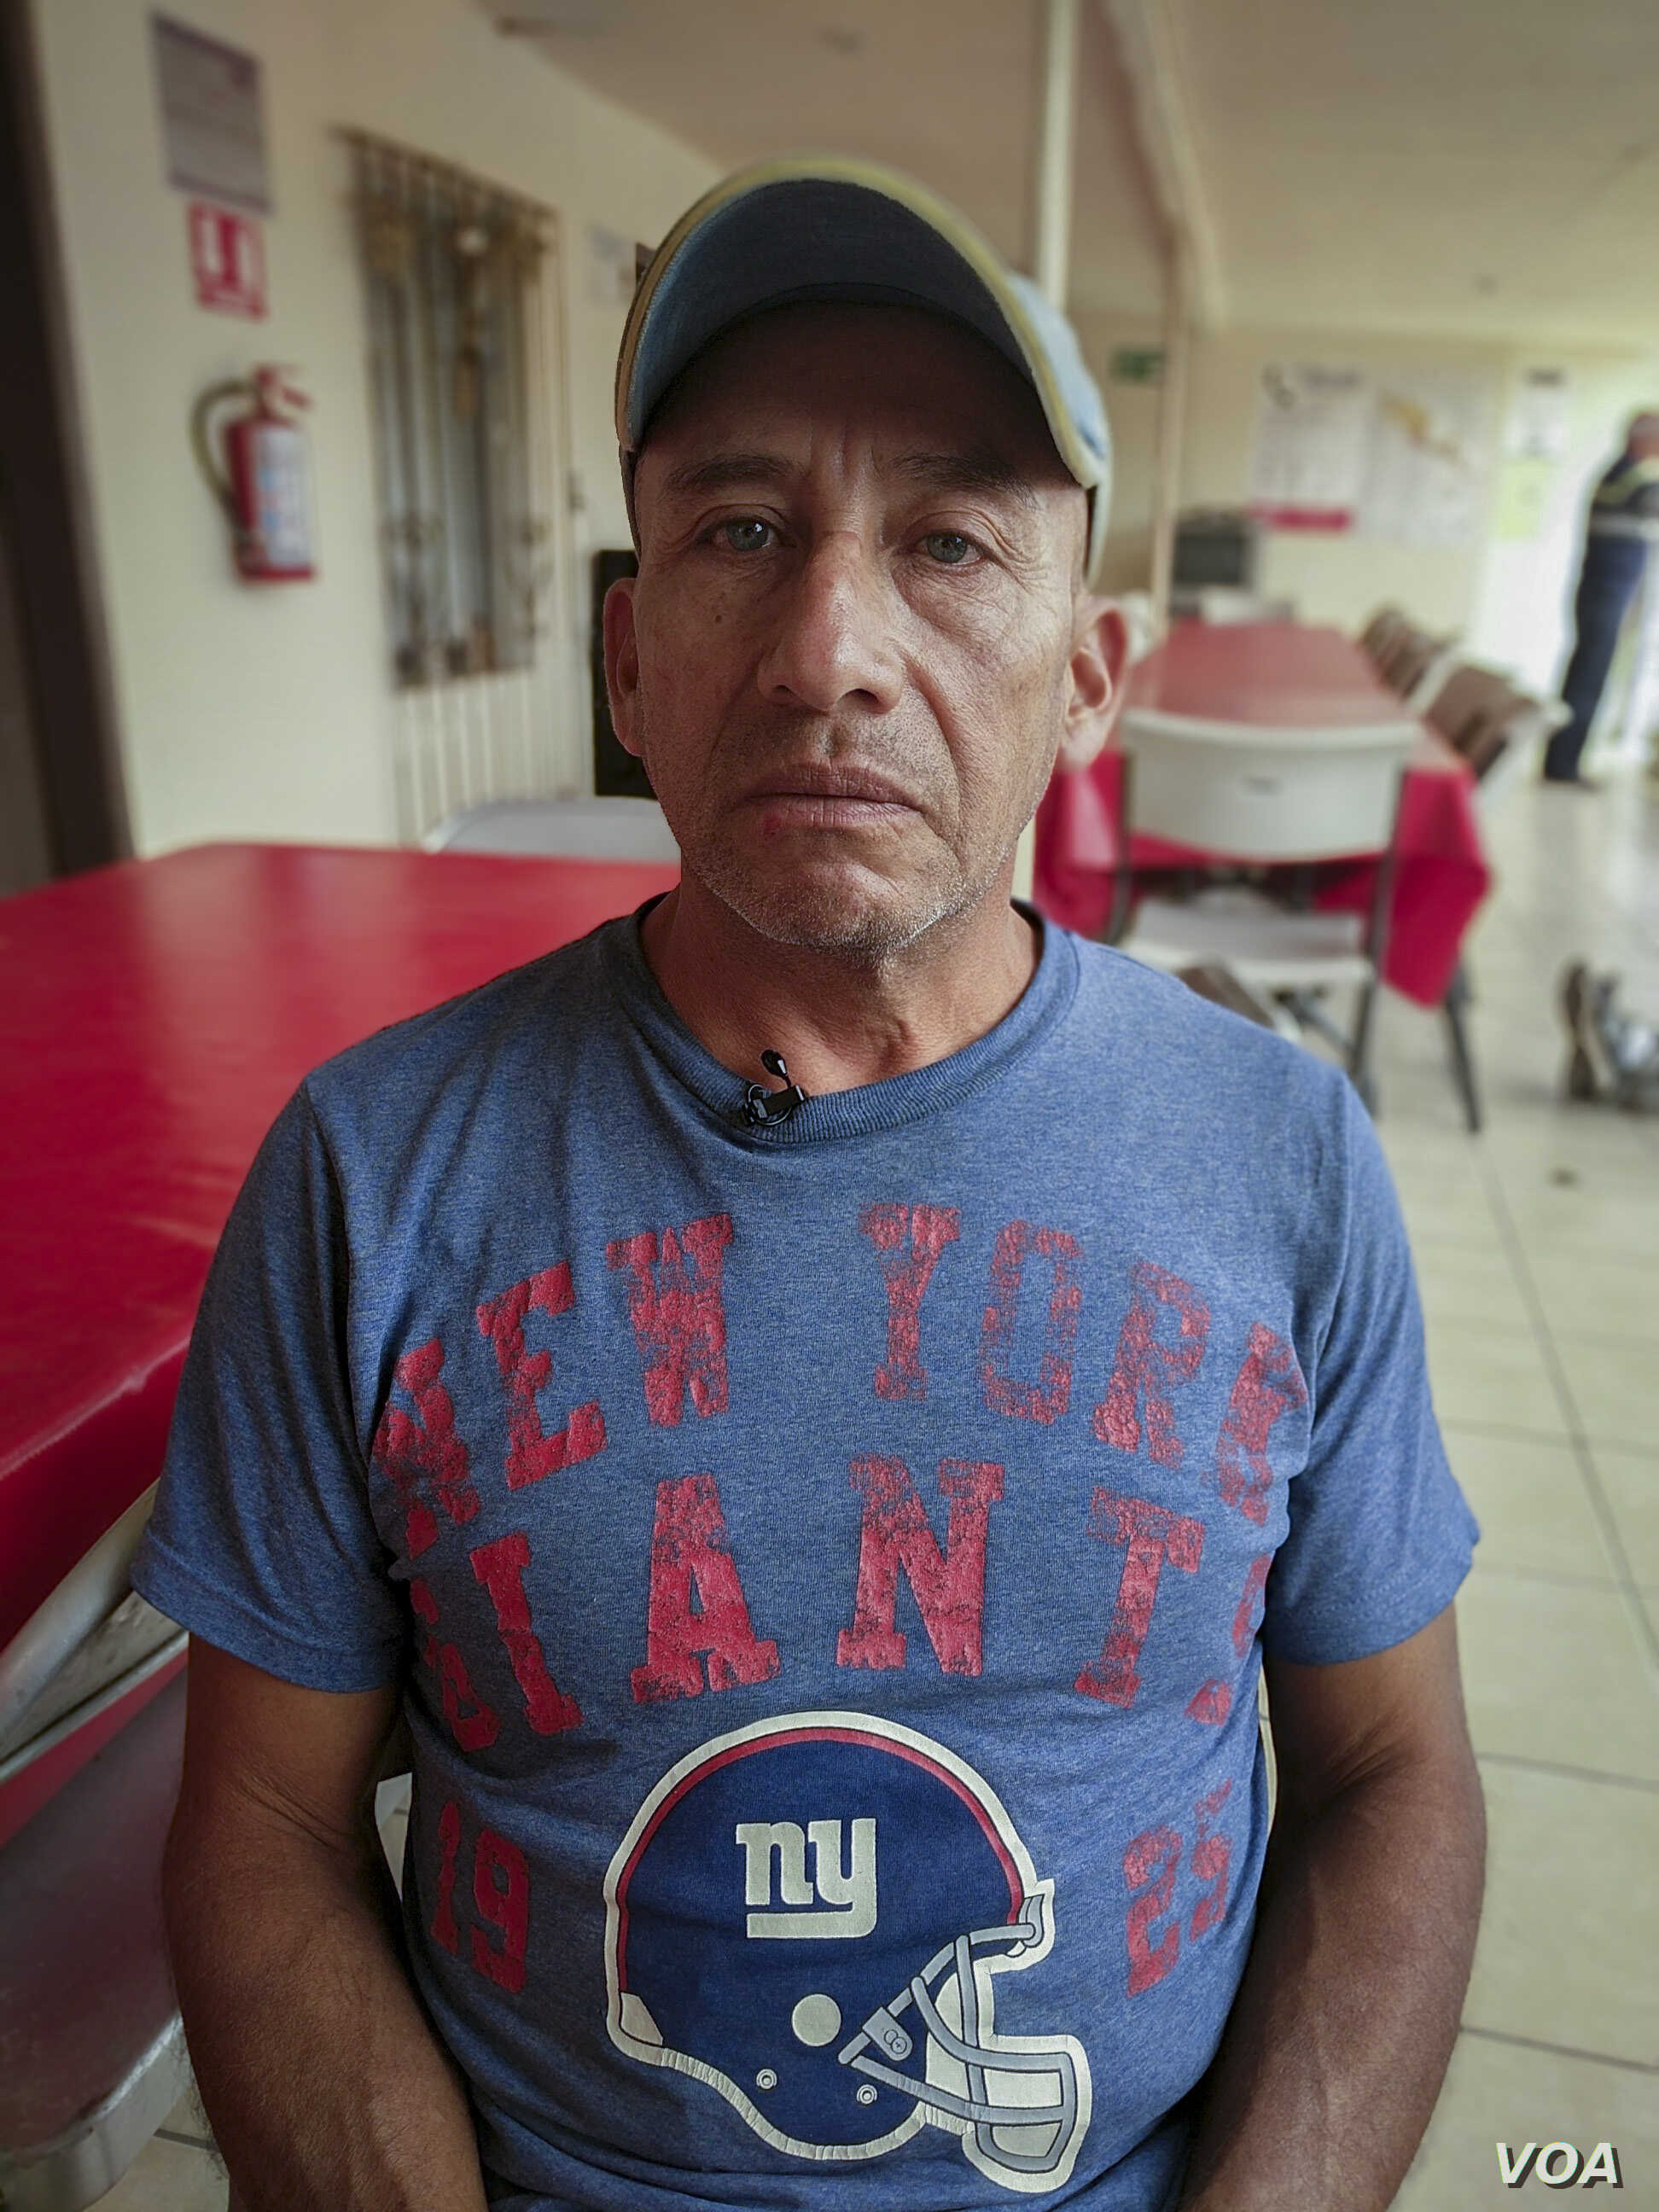 Mario - Mario Hernandez, a migrant from Guatemala, says he escaped threats from the Maras gang in Guatemala. But because of uncertainty in the U.S. asylum process and anti-immigration rhetoric, he has opted to seek a humanitarian visa in Mexico inste...